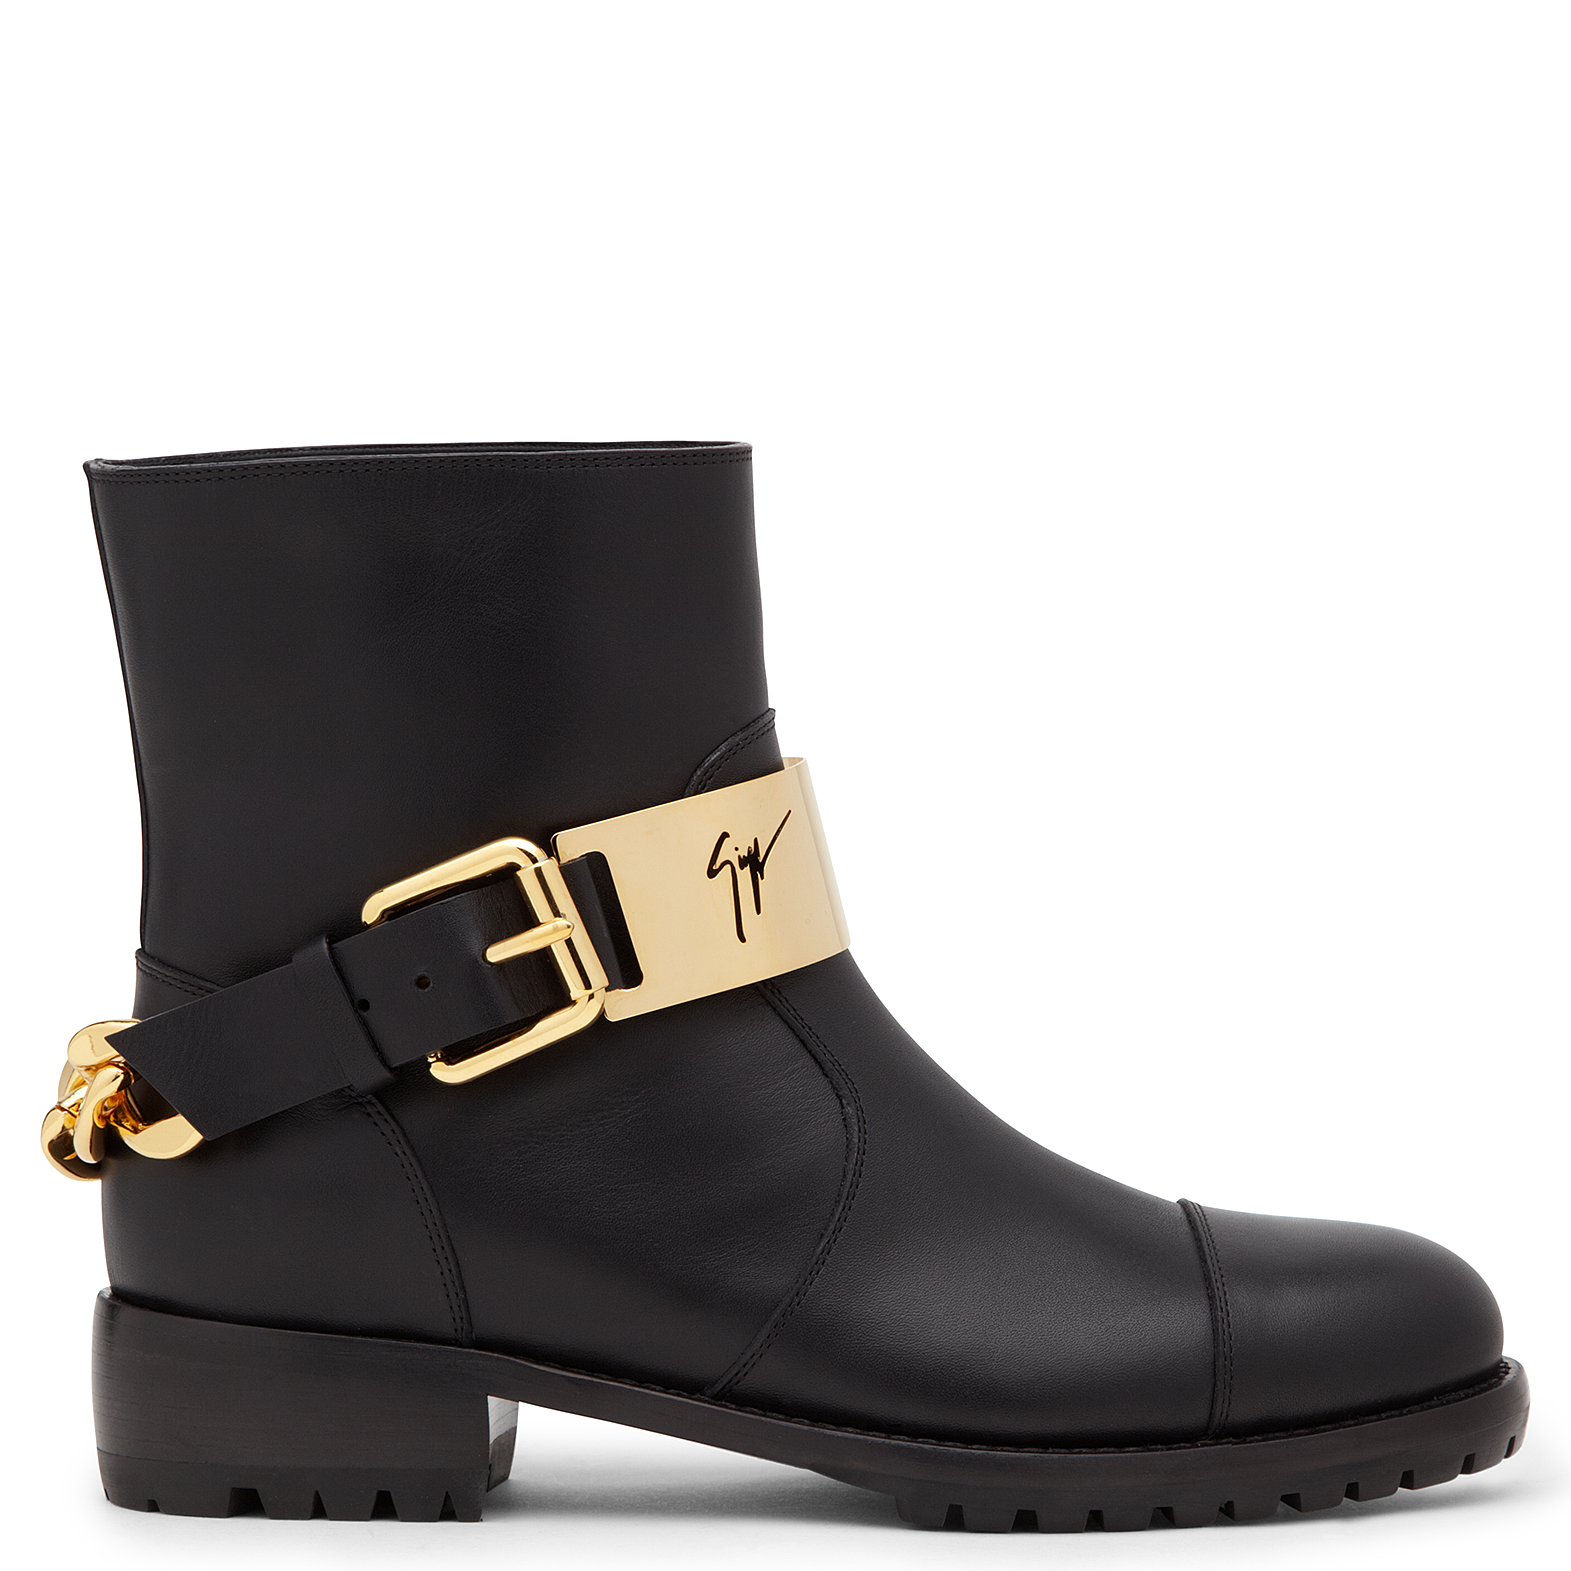 While the shape is traditional, the accessories demonstrate an attitude that's anything but: with gold-plated metal bars at each bridge, these black leather boots offer something original. The gripped rubber soles finish off a commanding design.